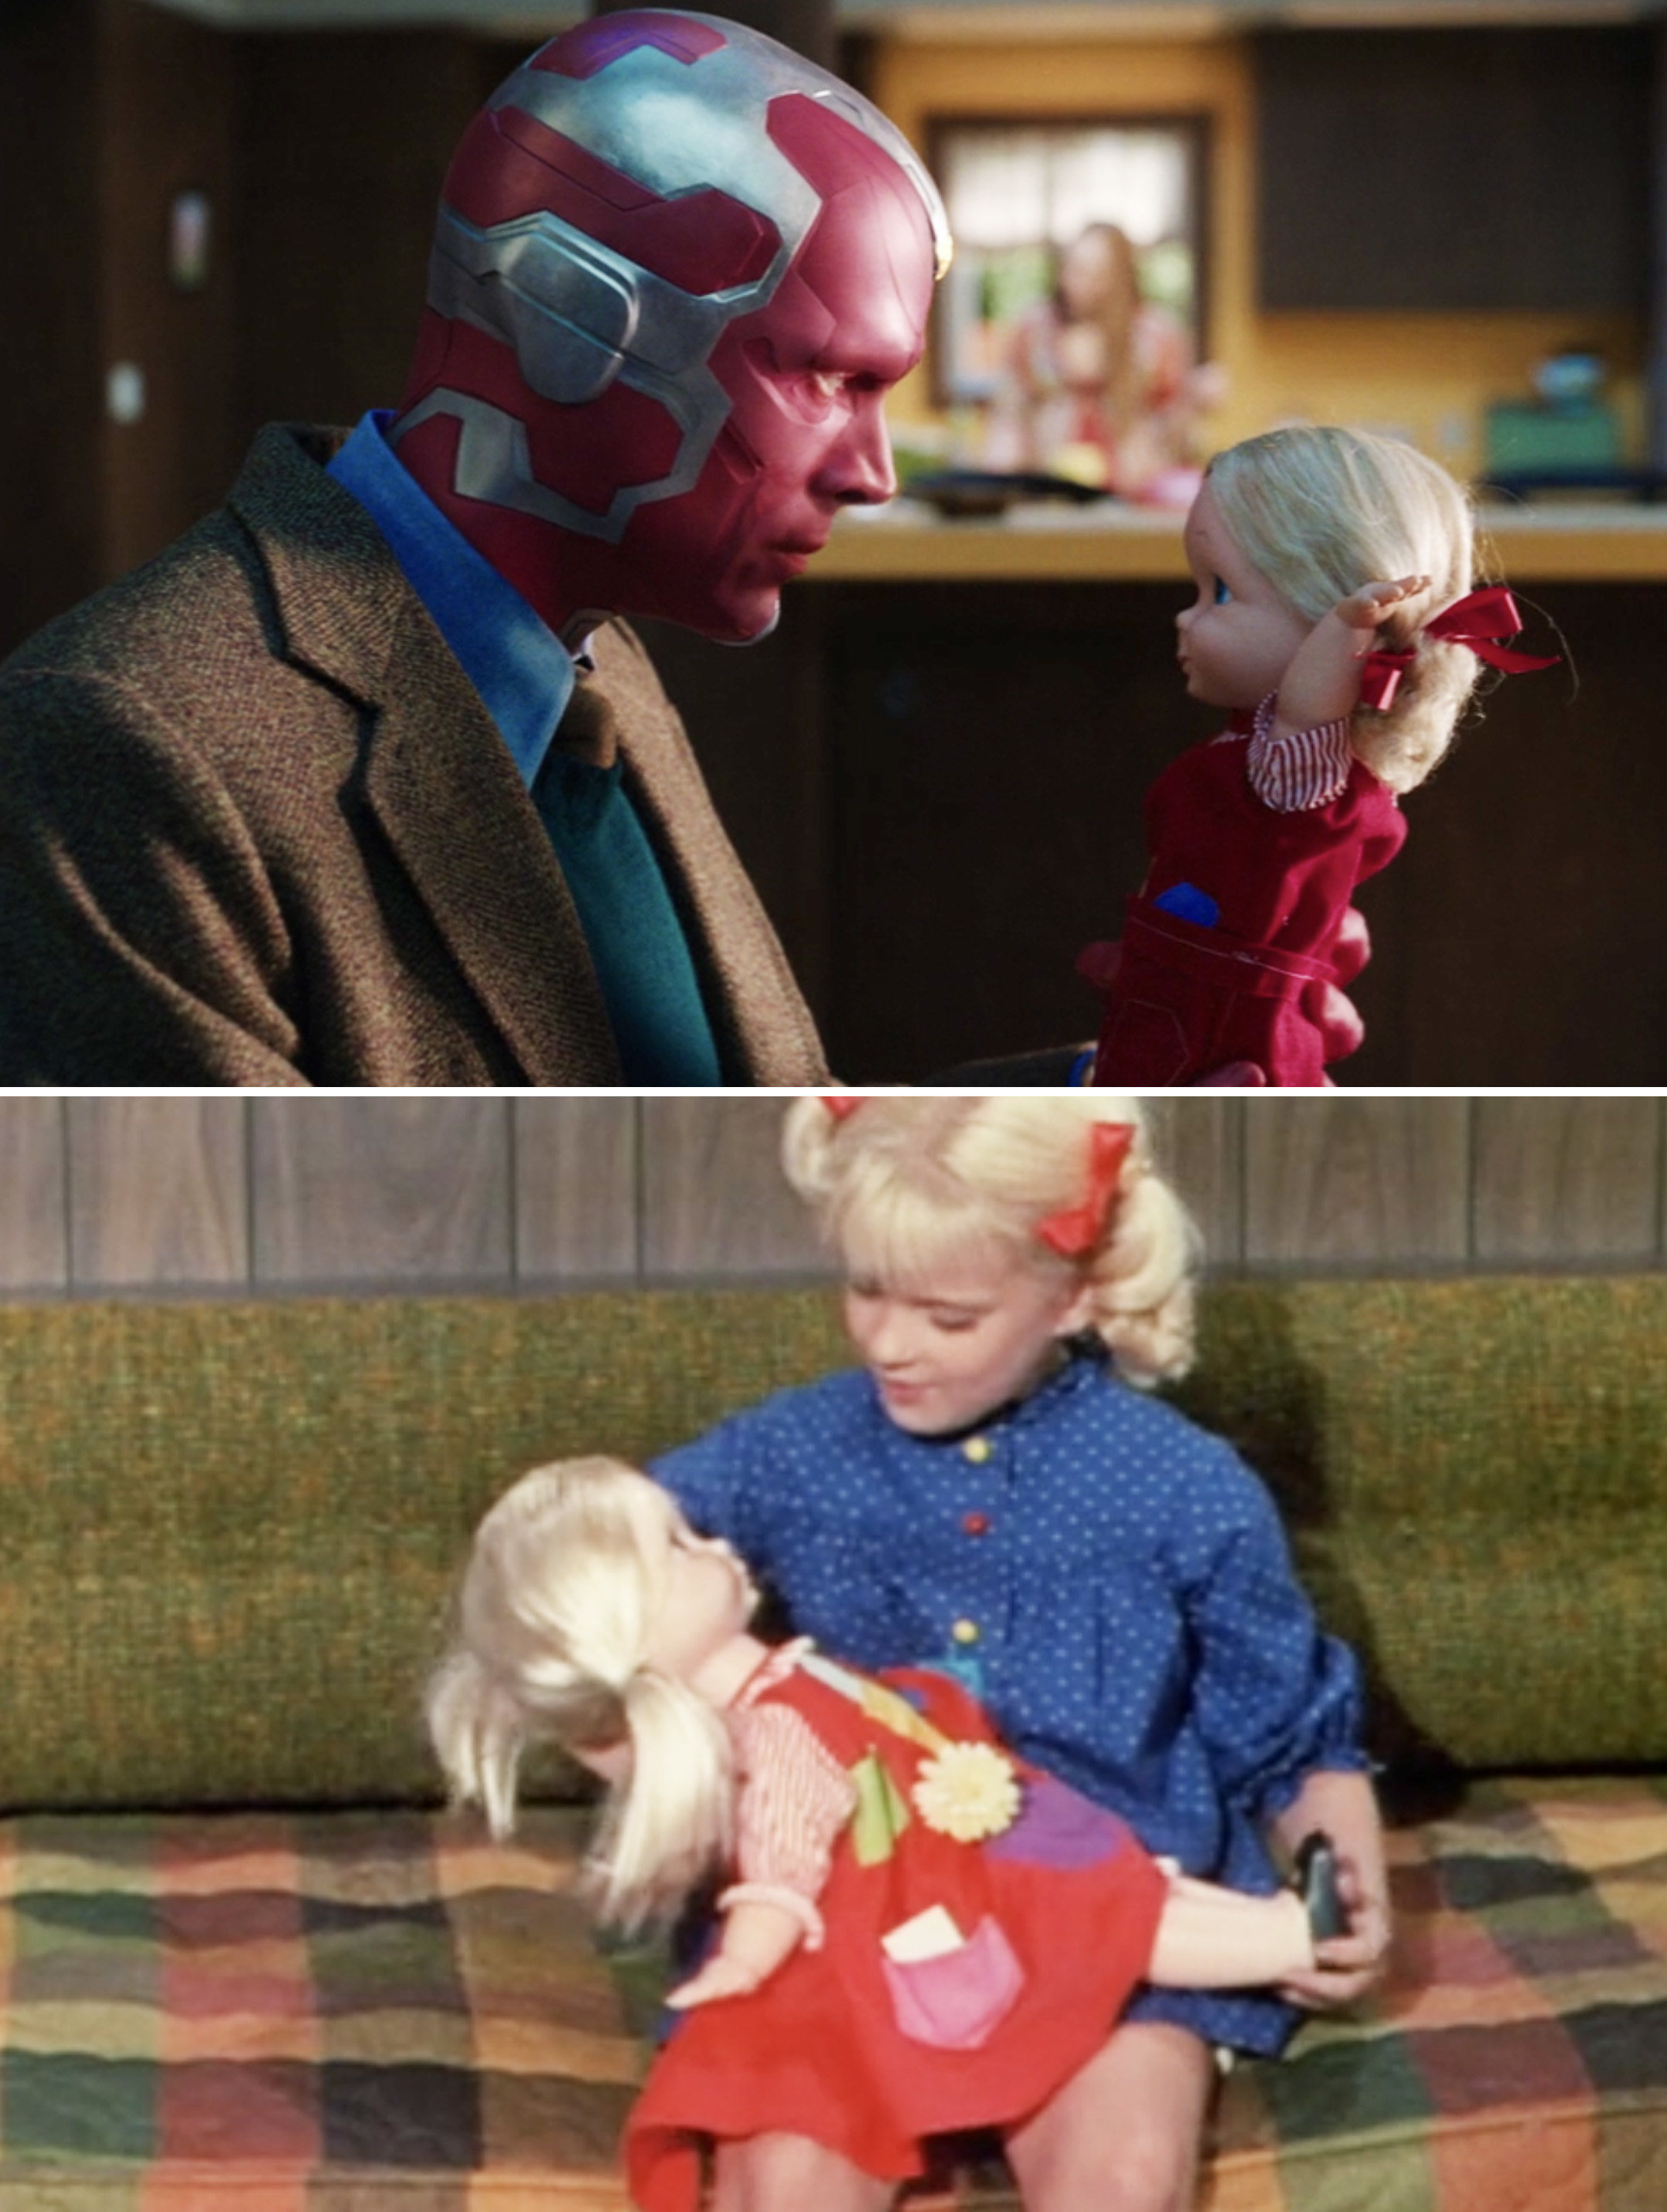 Vision holding a doll vs. Cindy holding her Kitty Karry-All doll